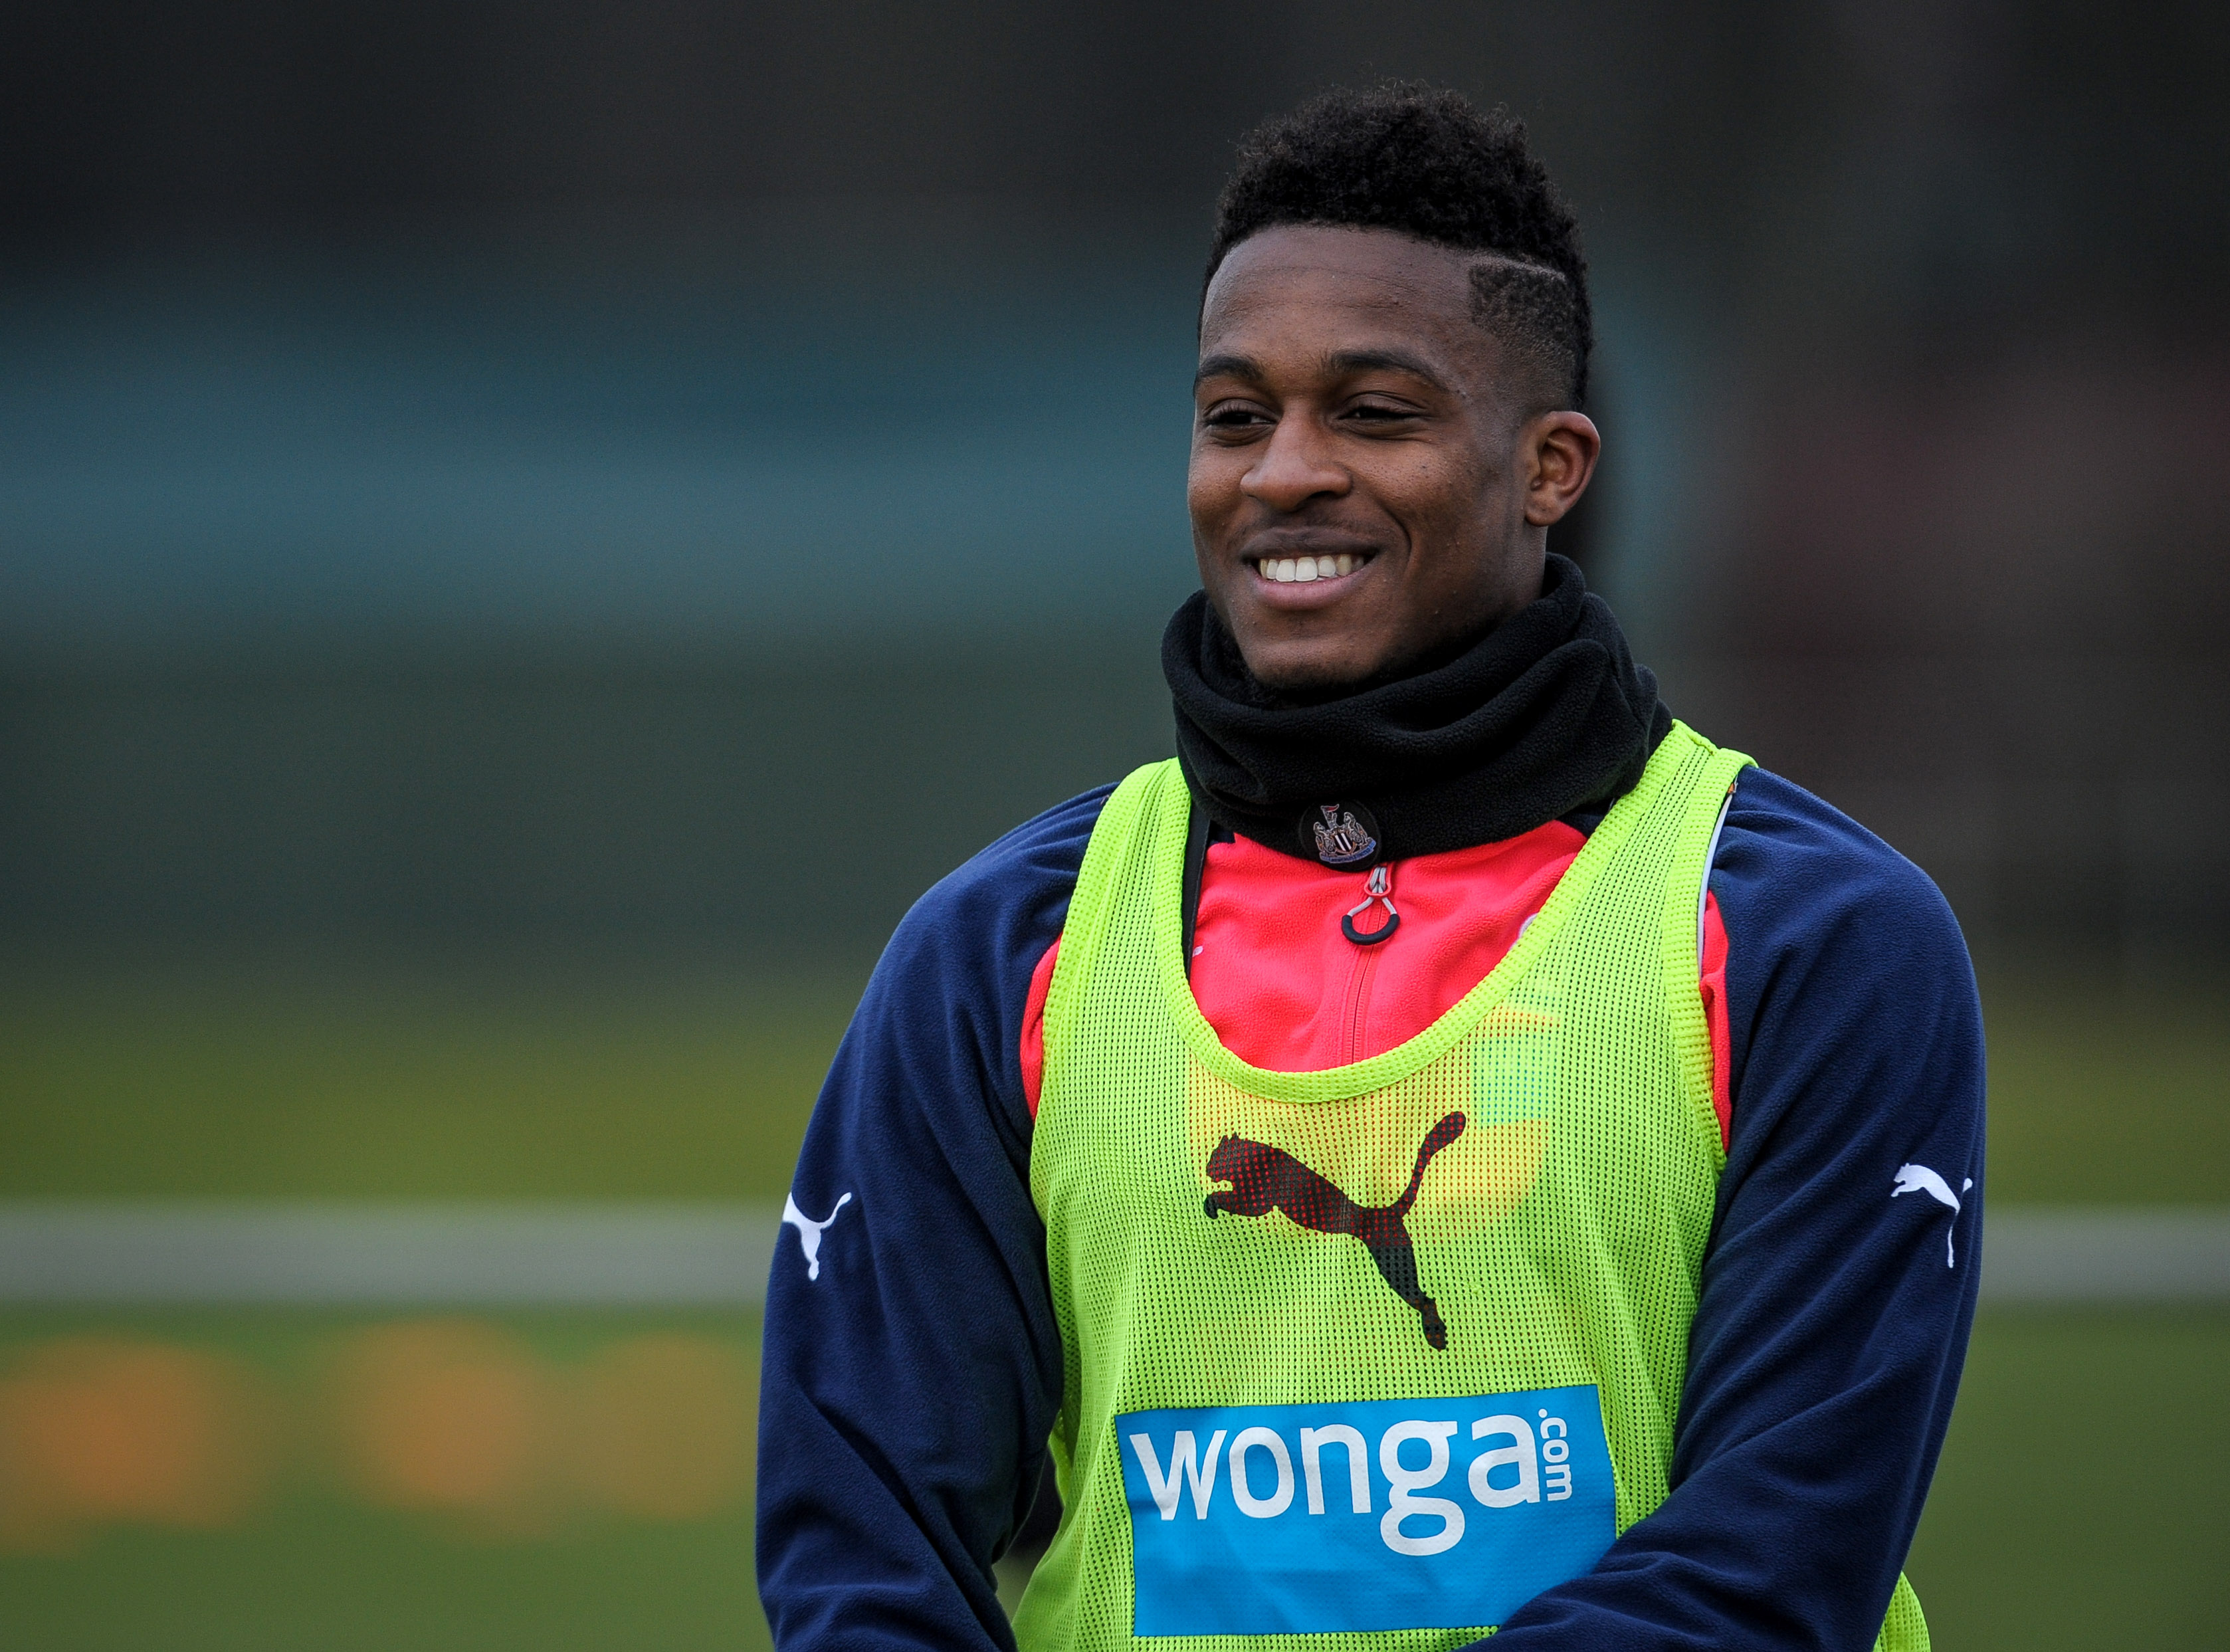 Rumour: Arsenal chasing free transfer of Newcastle's Rolando Aarons